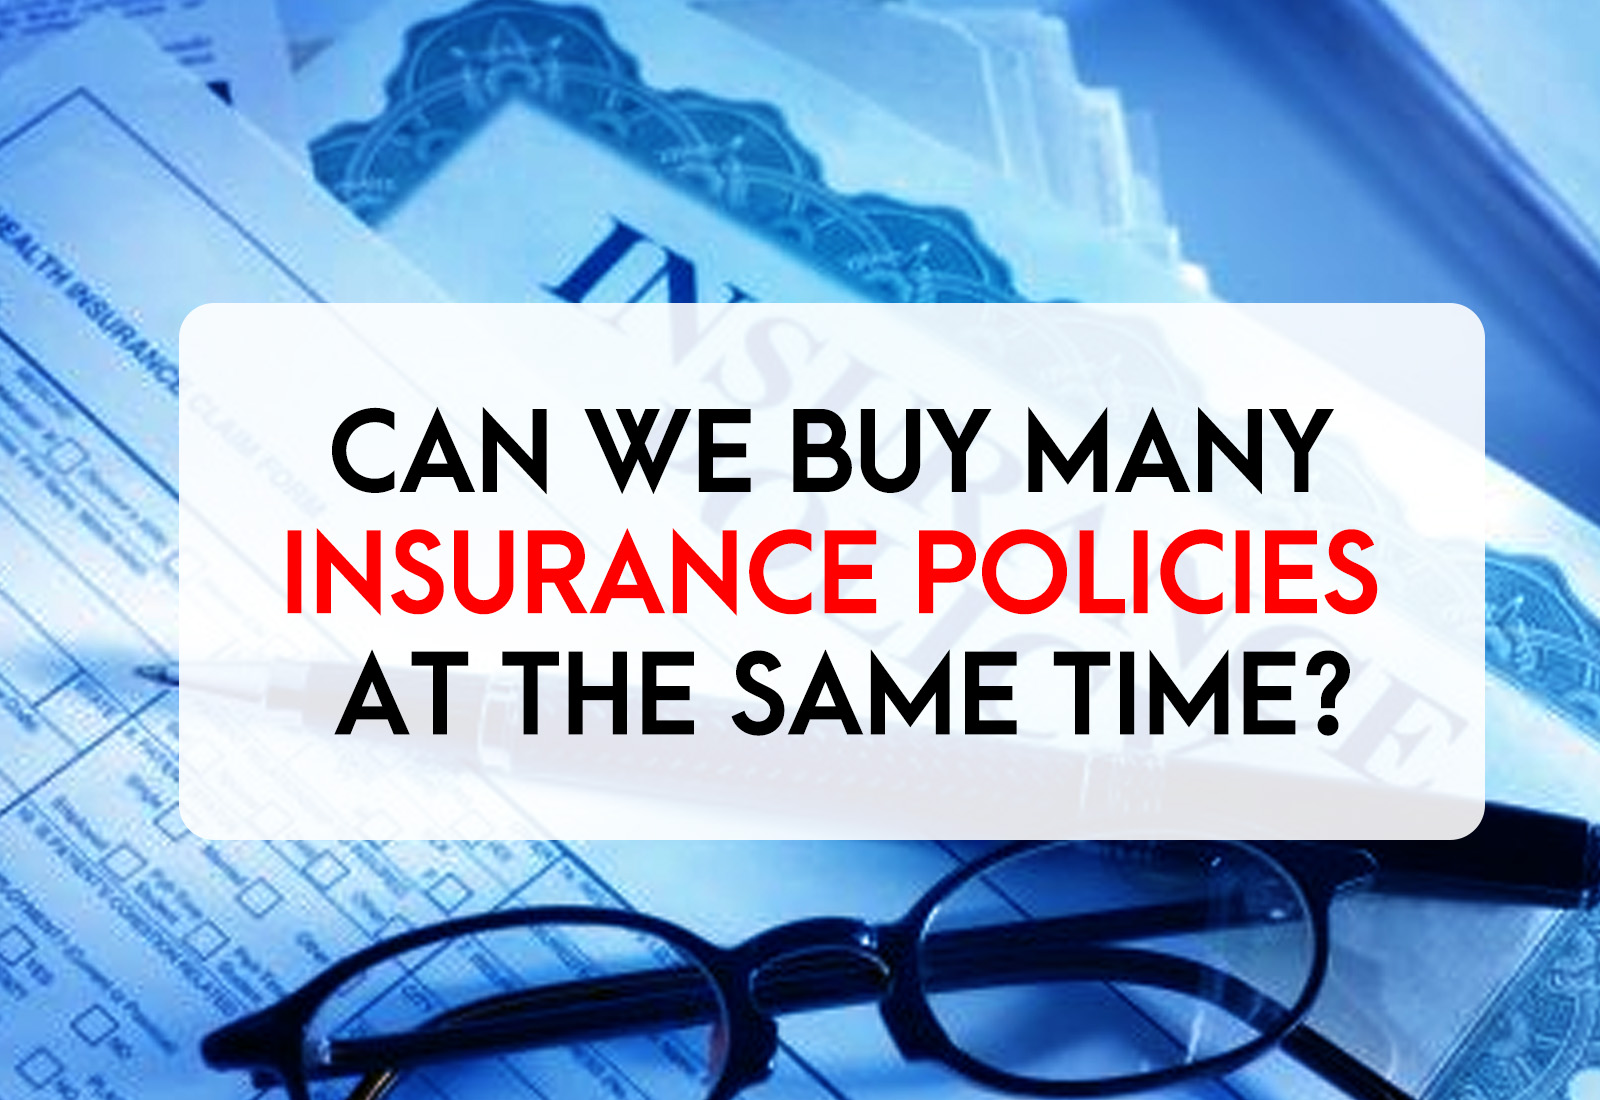 Can We Buy Many Insurance Policies at The Same Time?